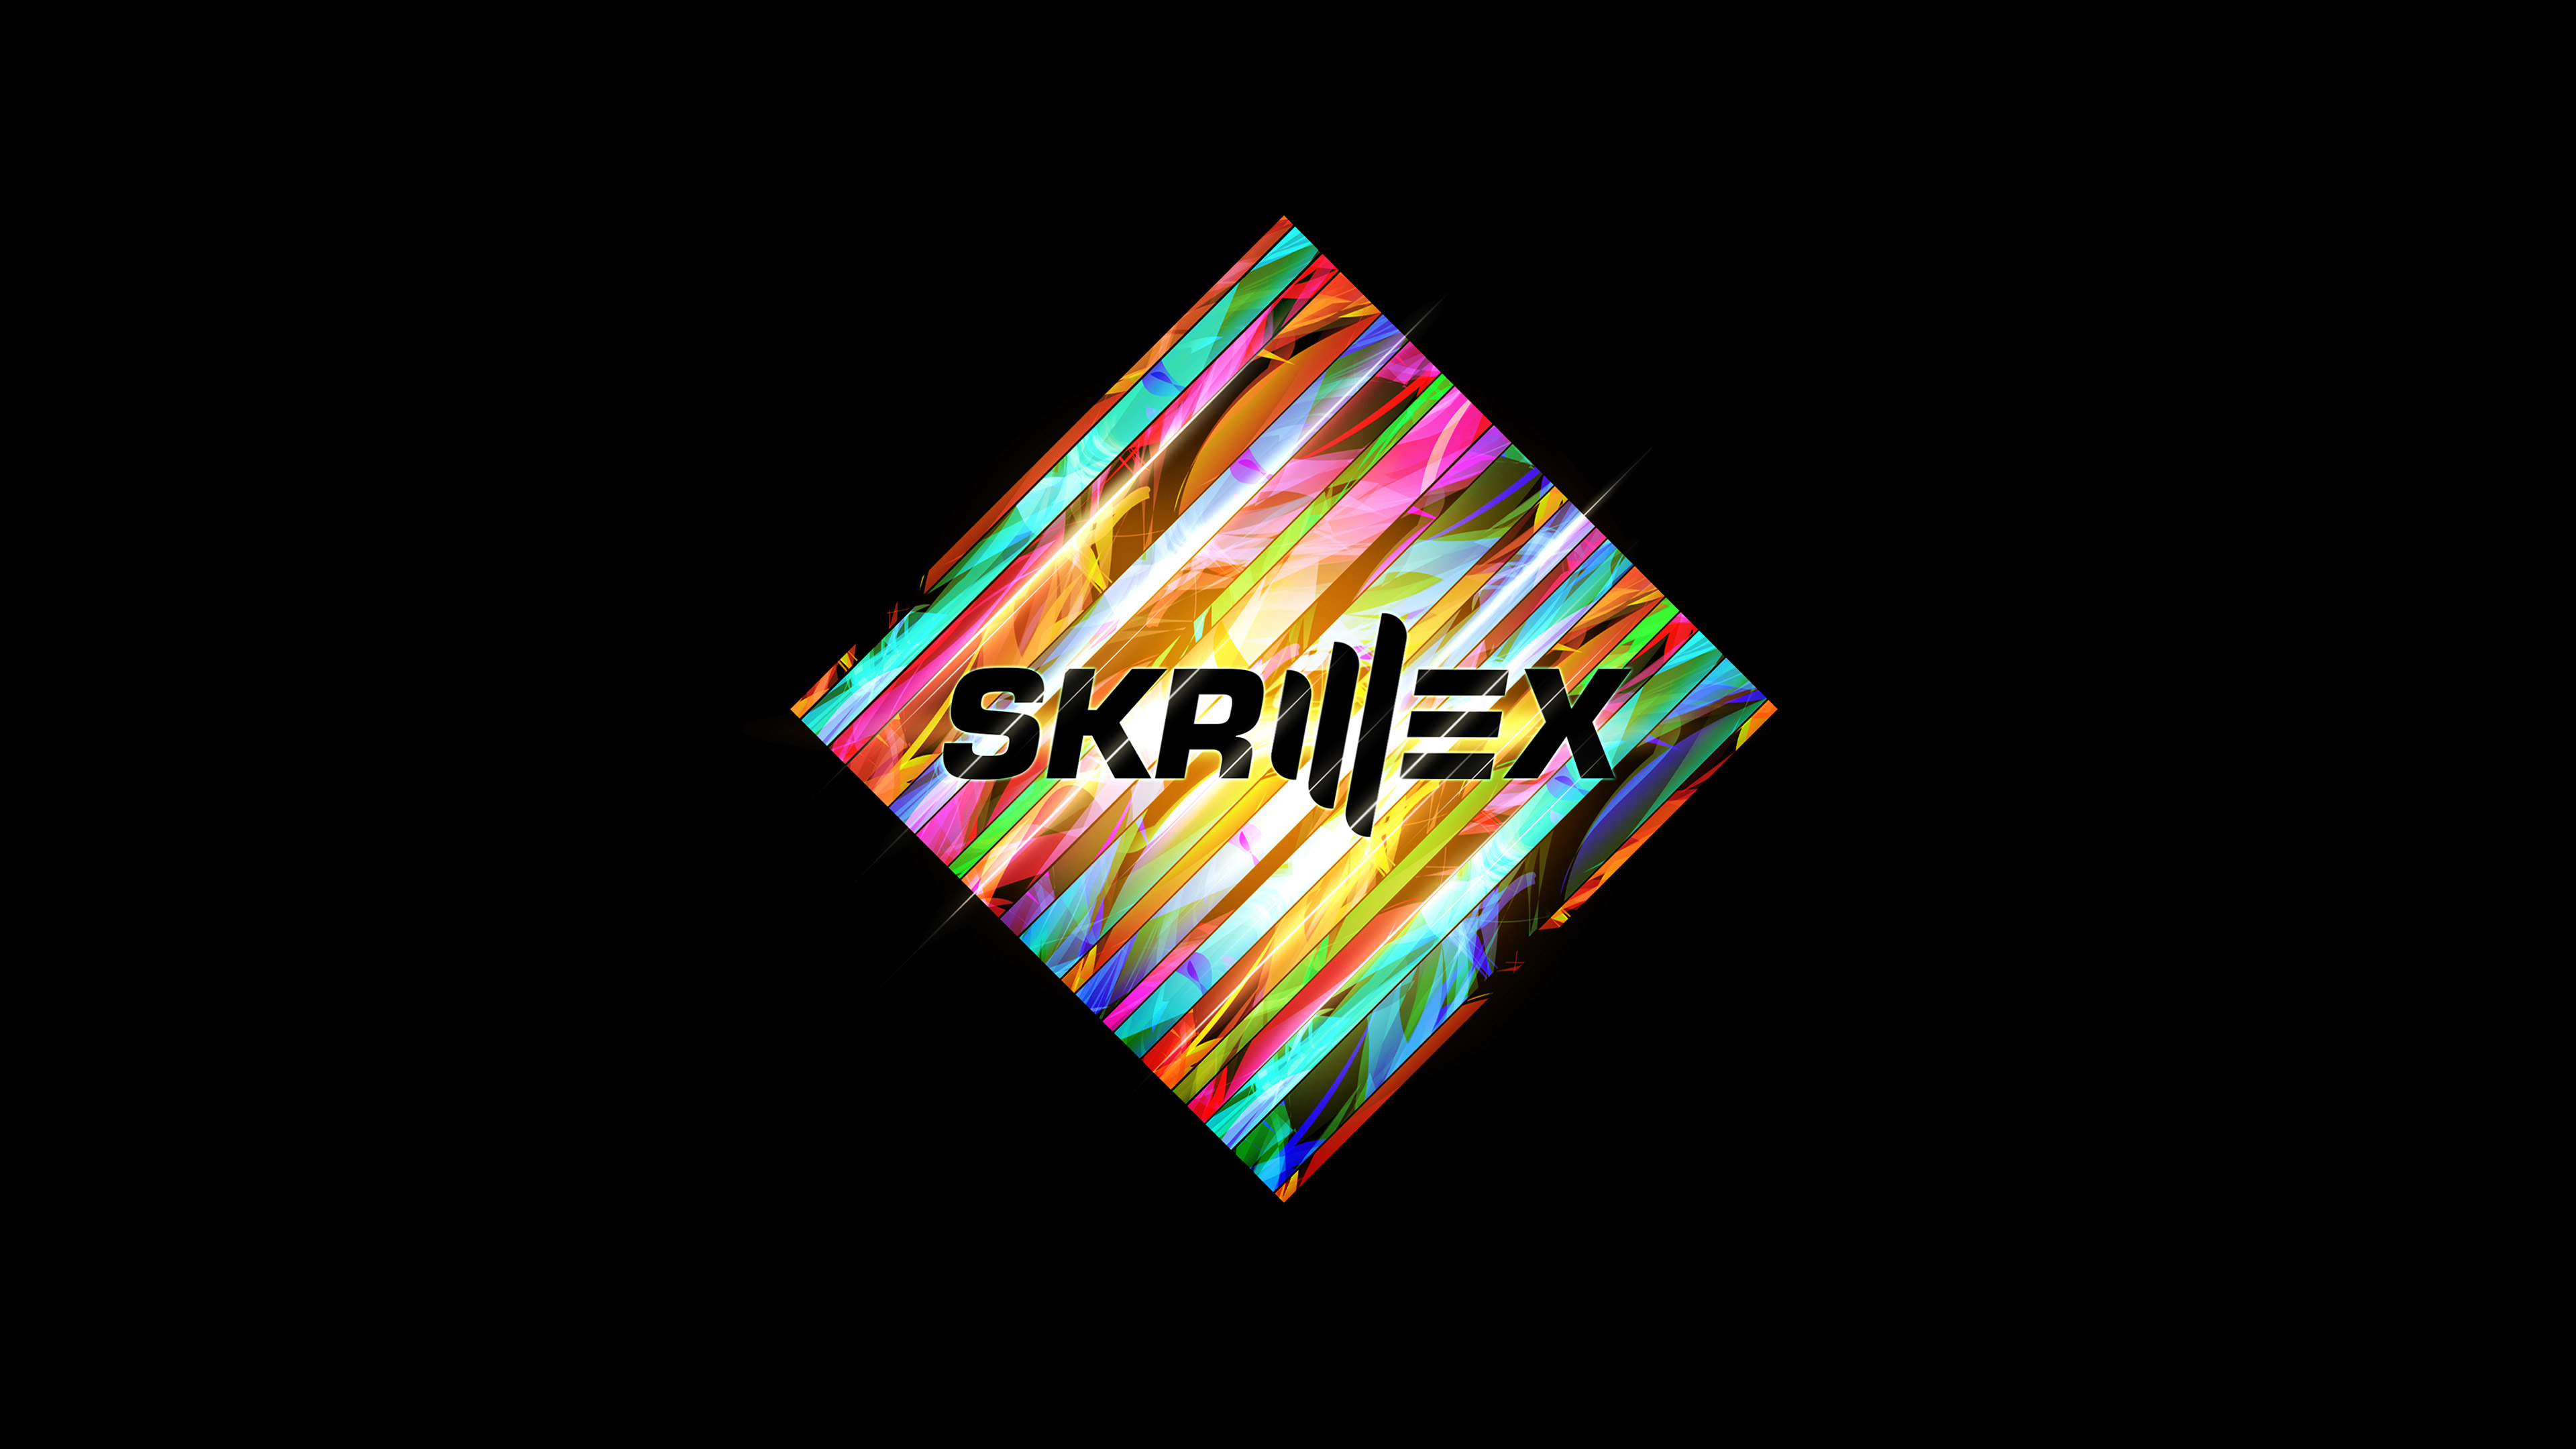 Skrillex Wallpapers Images Backgrounds Photos and Pictures